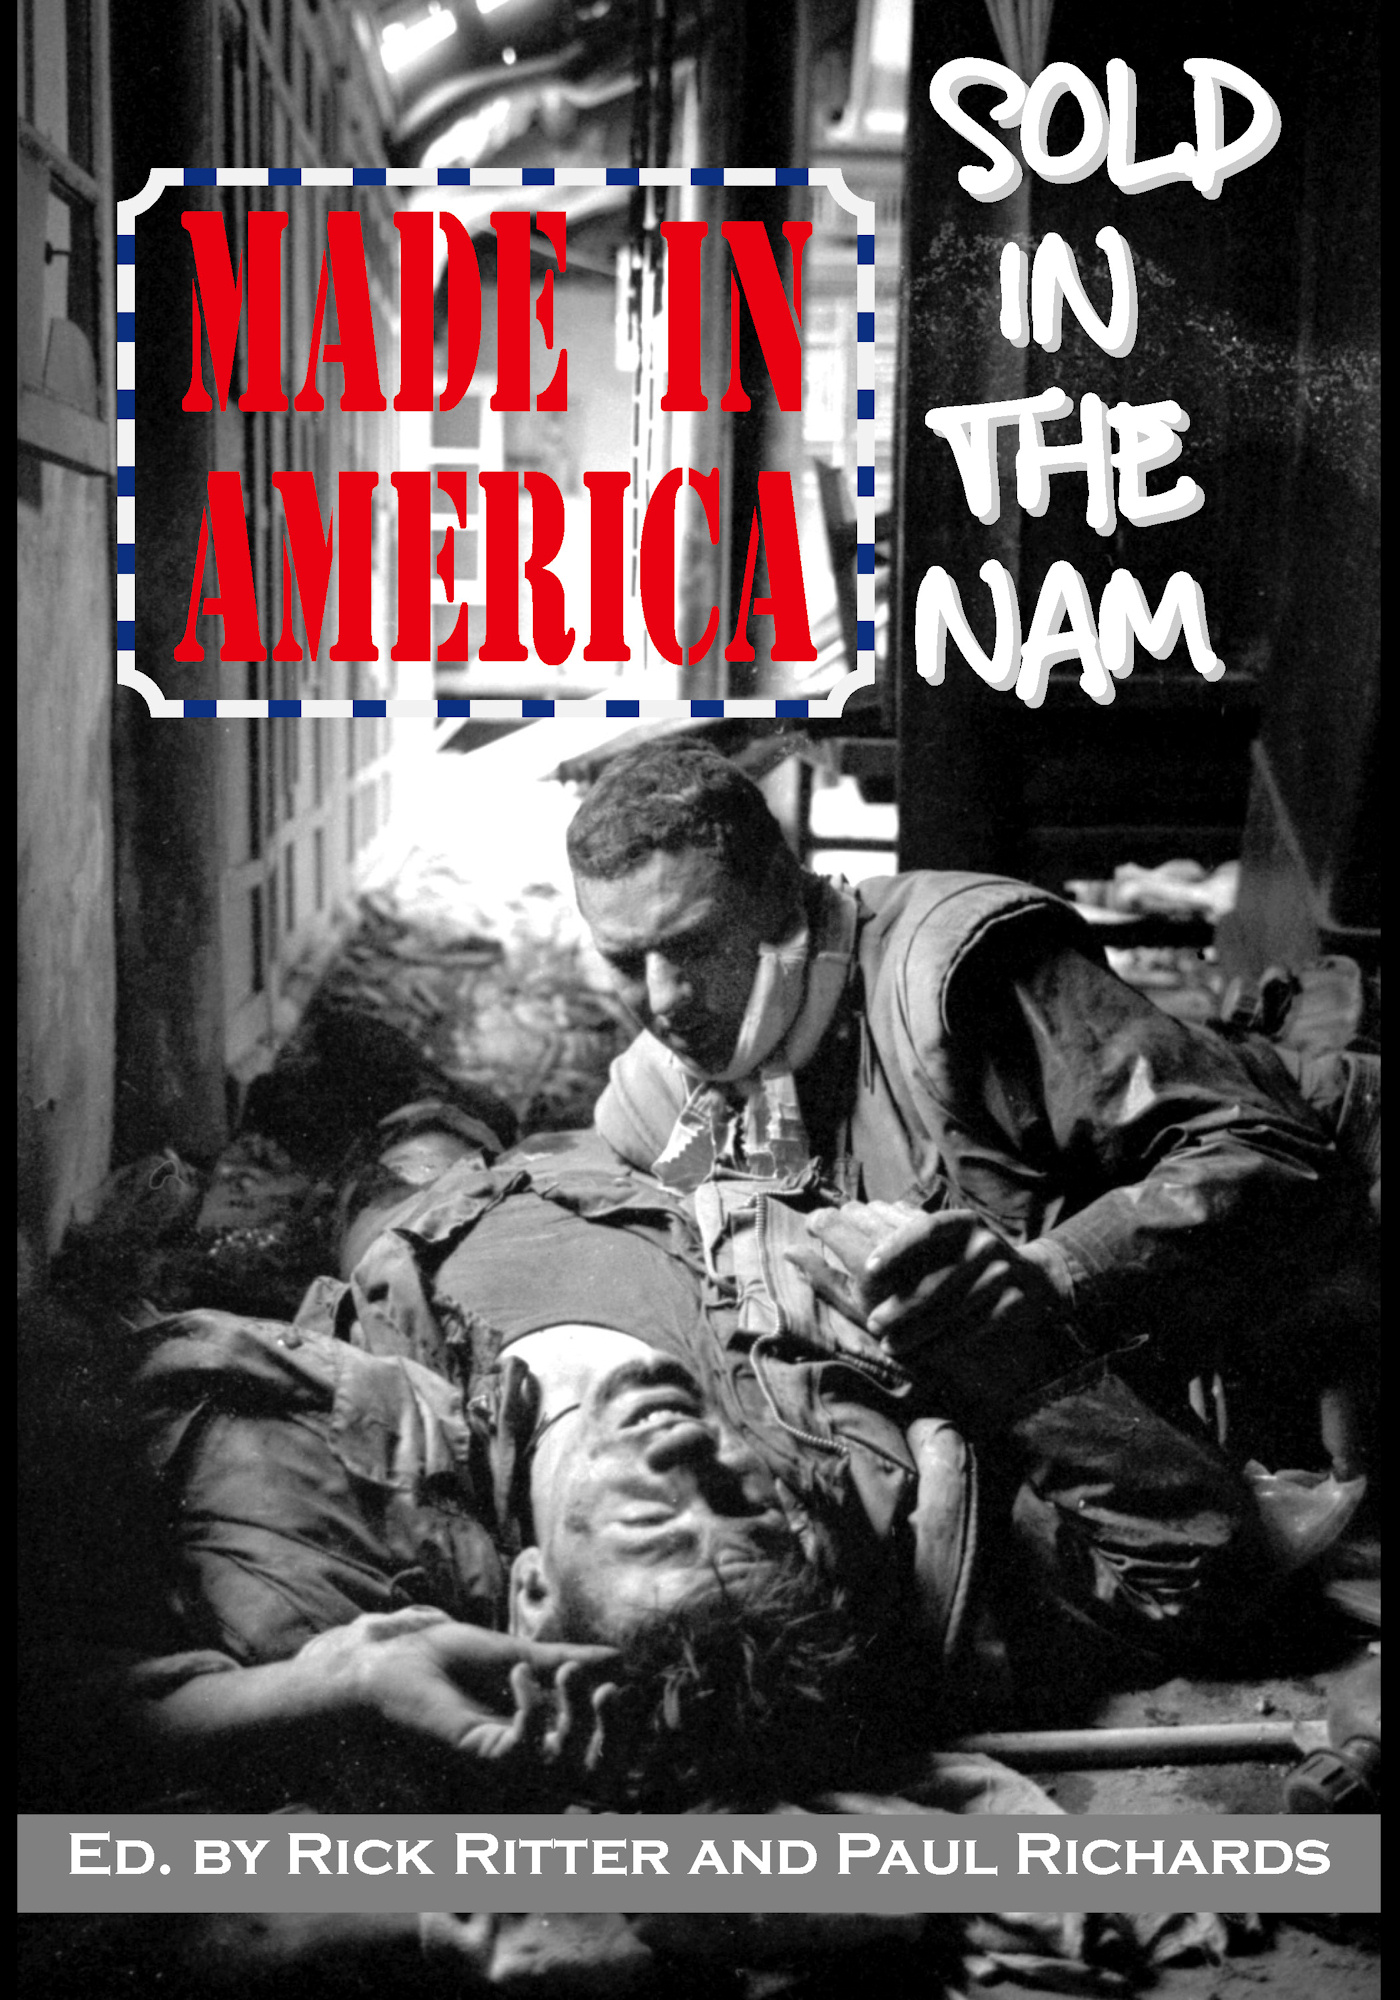 Made in America: Sold in the Nam